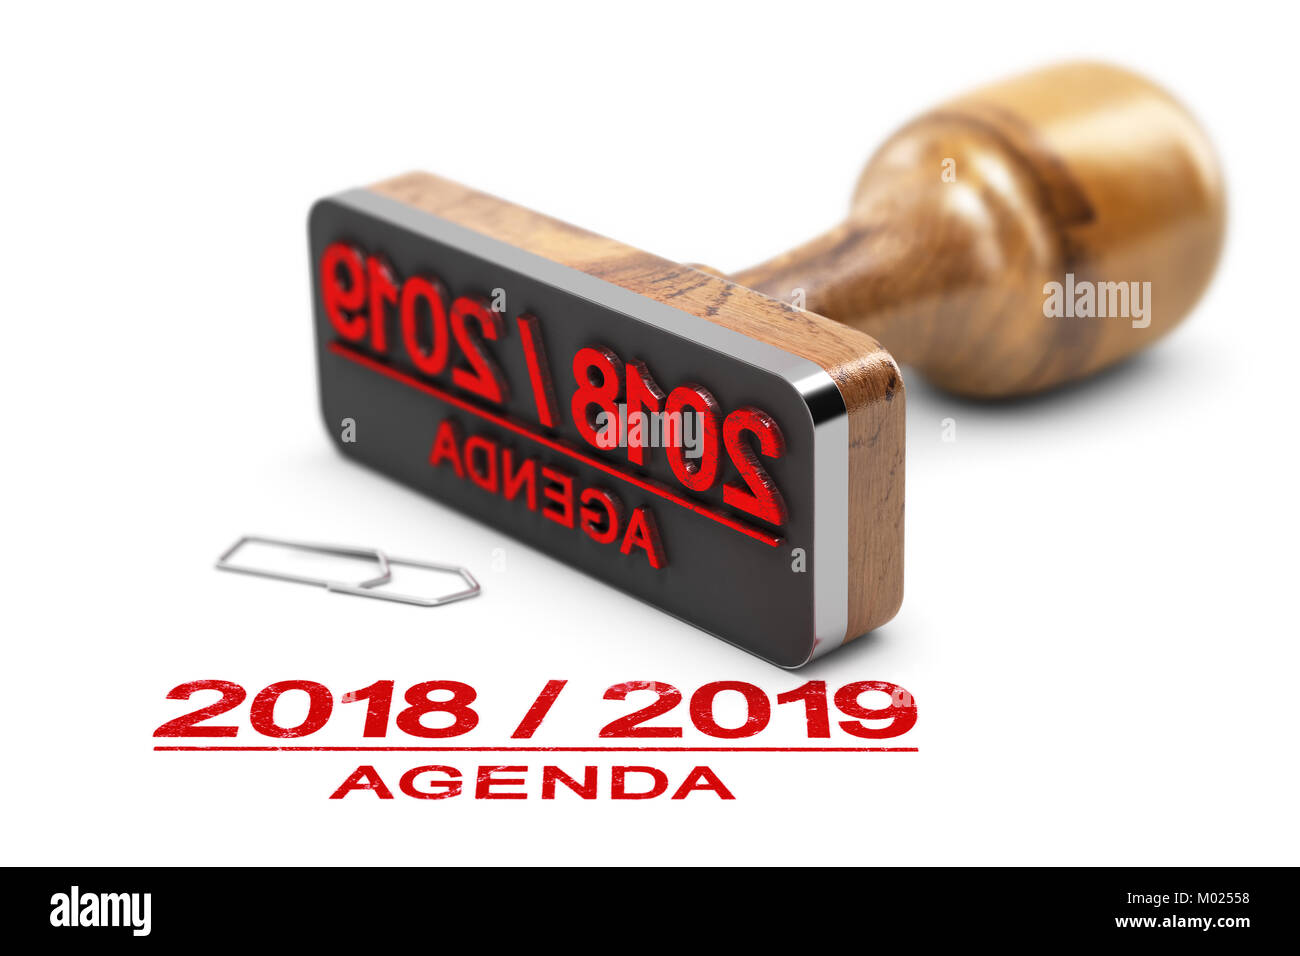 Events Calendar Stock Photos Images Alamy The Gregorian Circuit Rubber Stamp And 2018 2019 Agenda Over White Background 3d Illustration Image